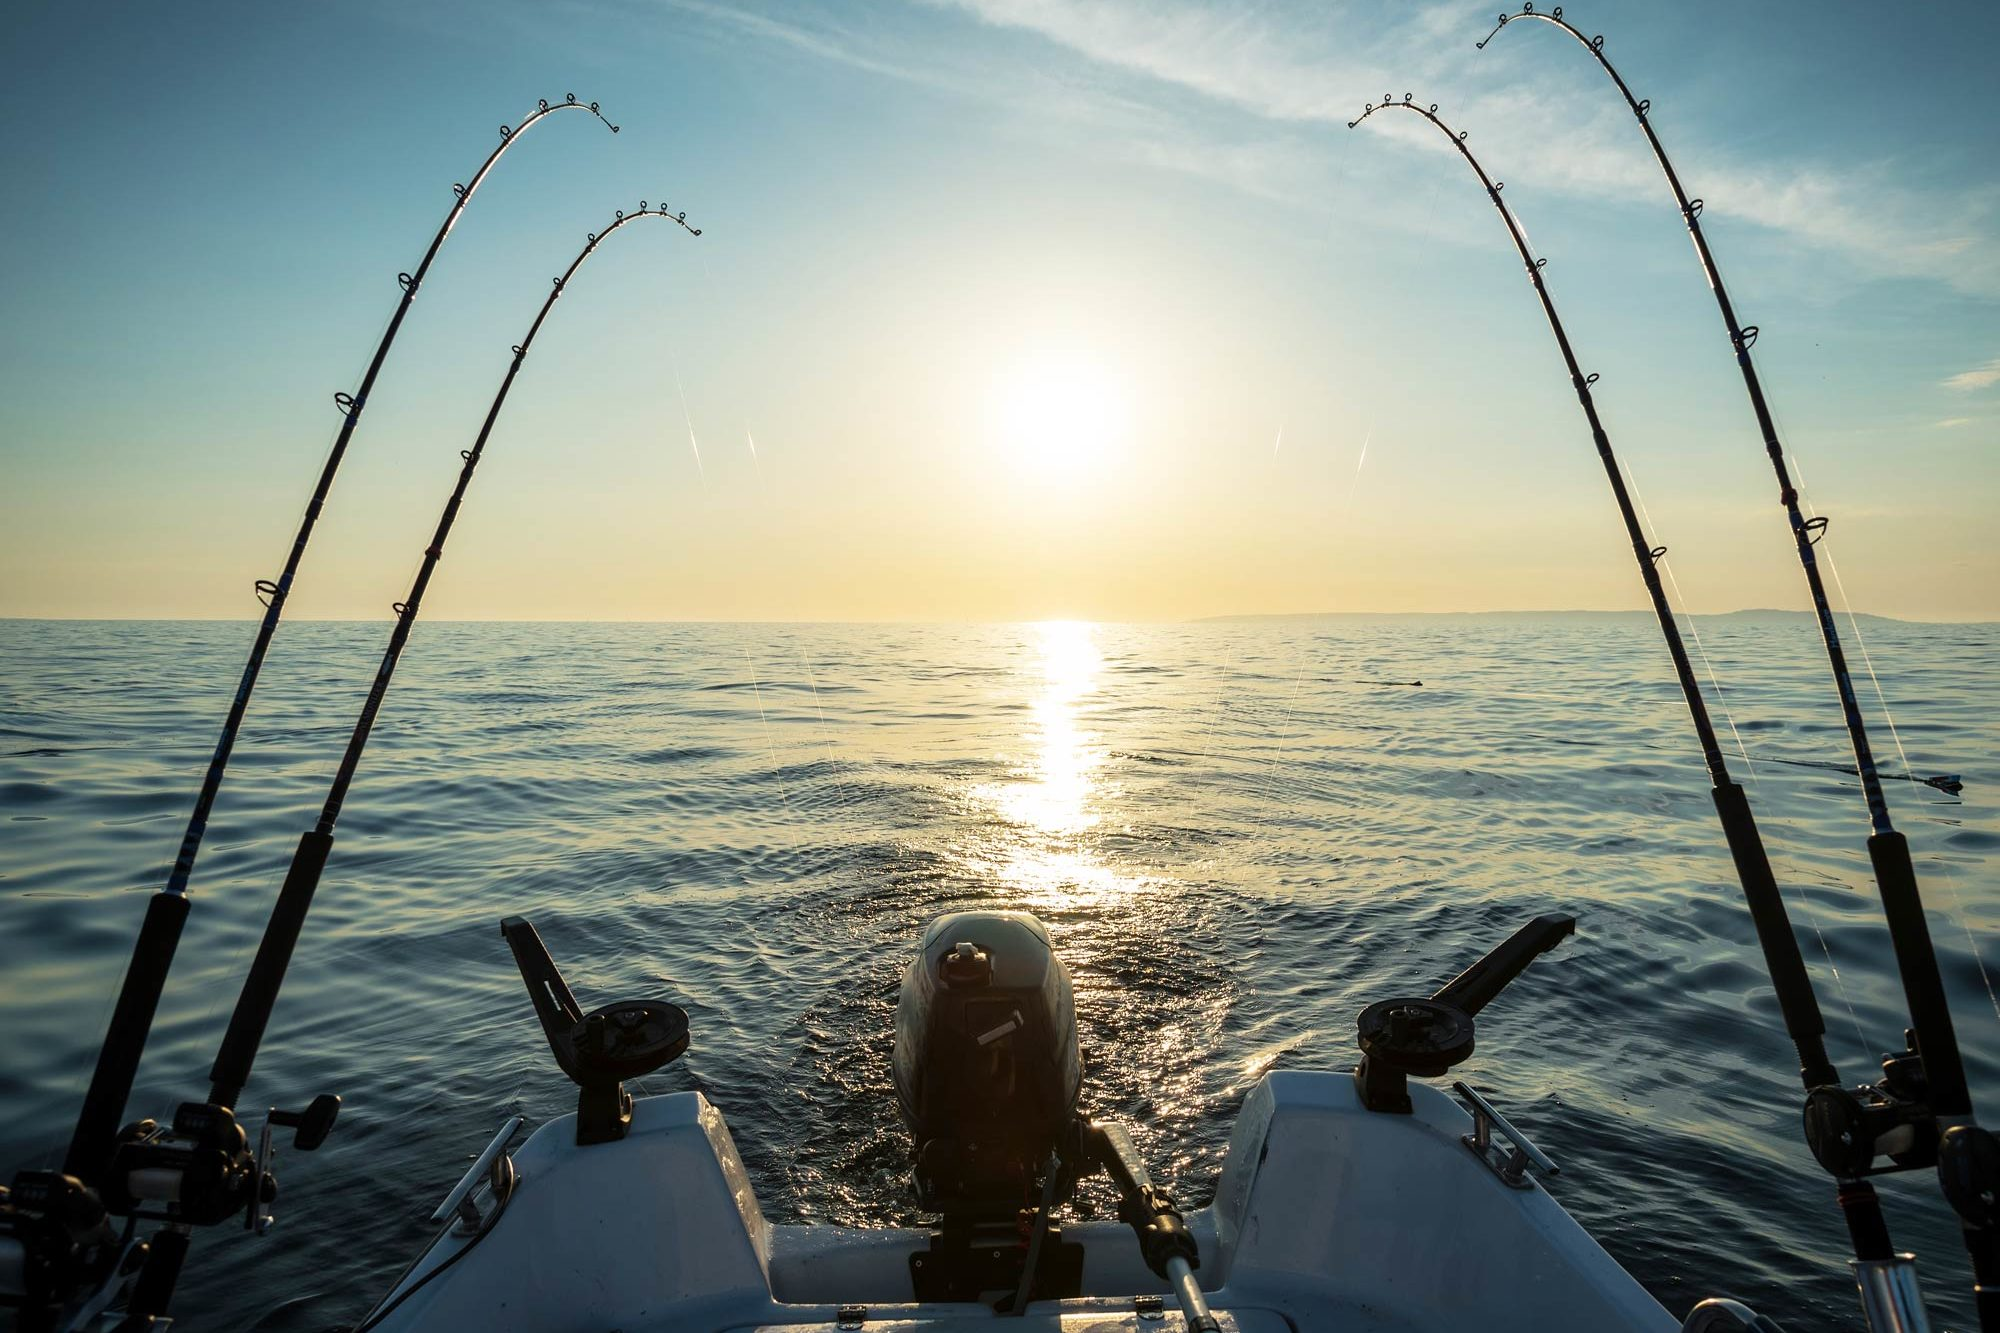 Four trolling fishing rods on a boat just after sunrise